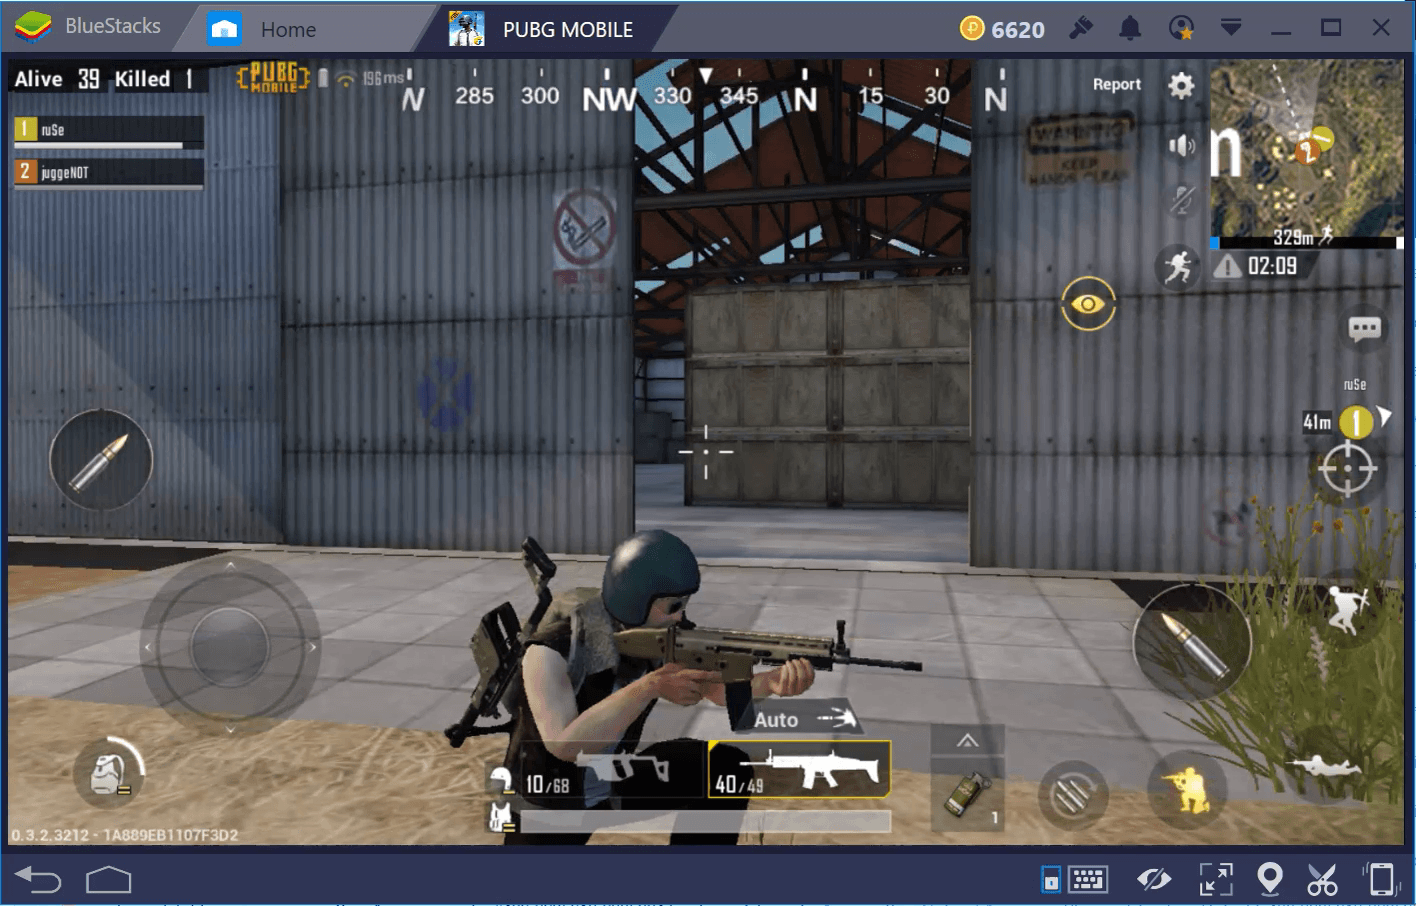 PUBG Mobile Assault Rifles